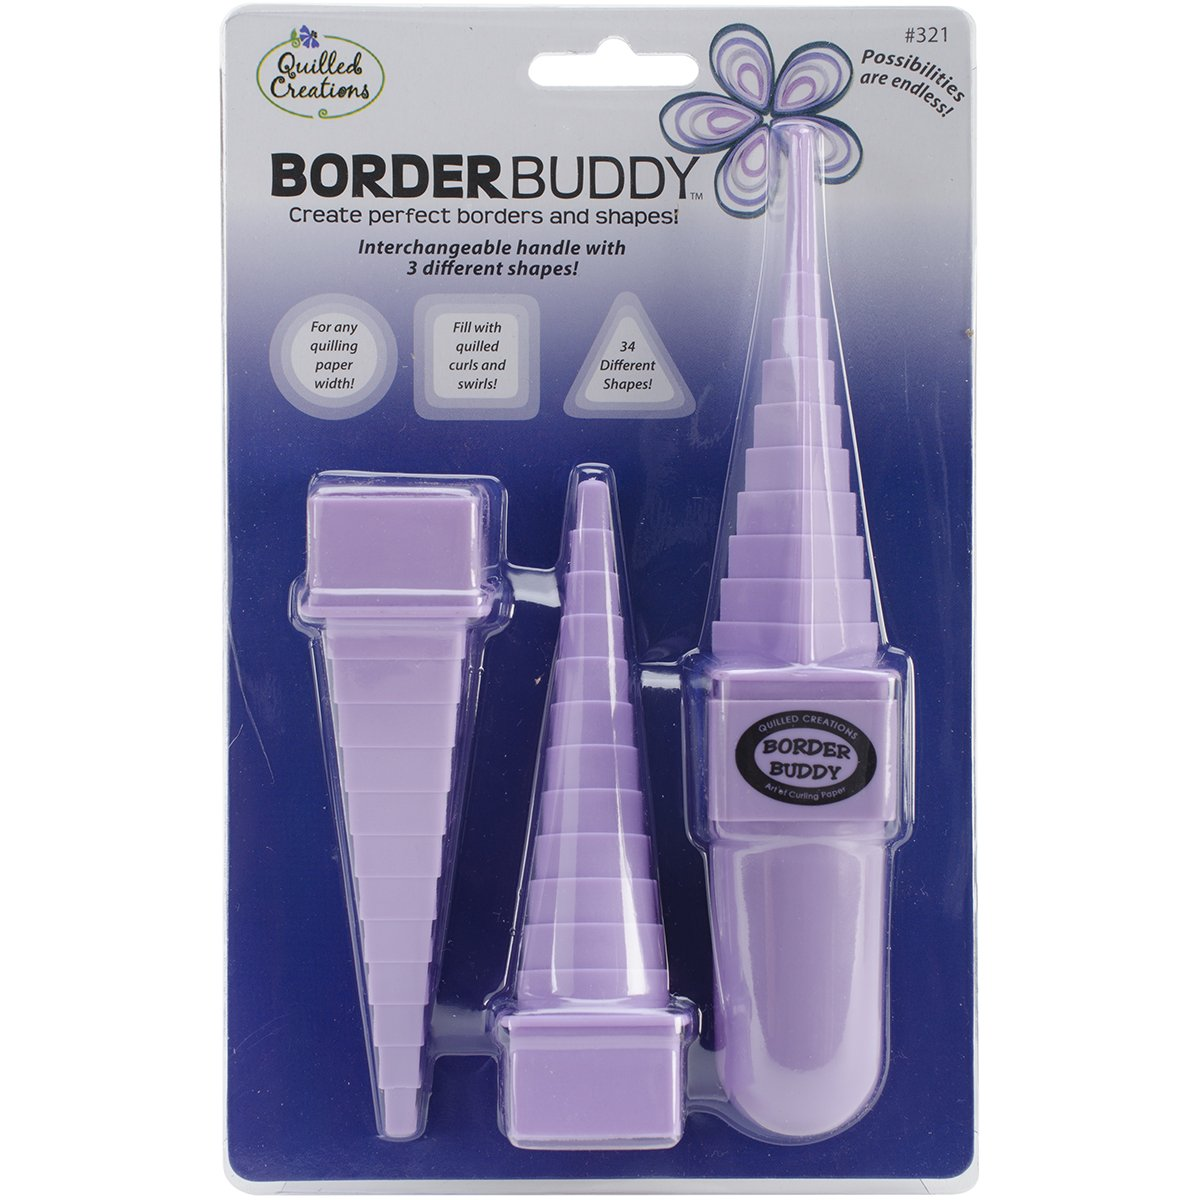 Quilled Creations Border Buddy Q321